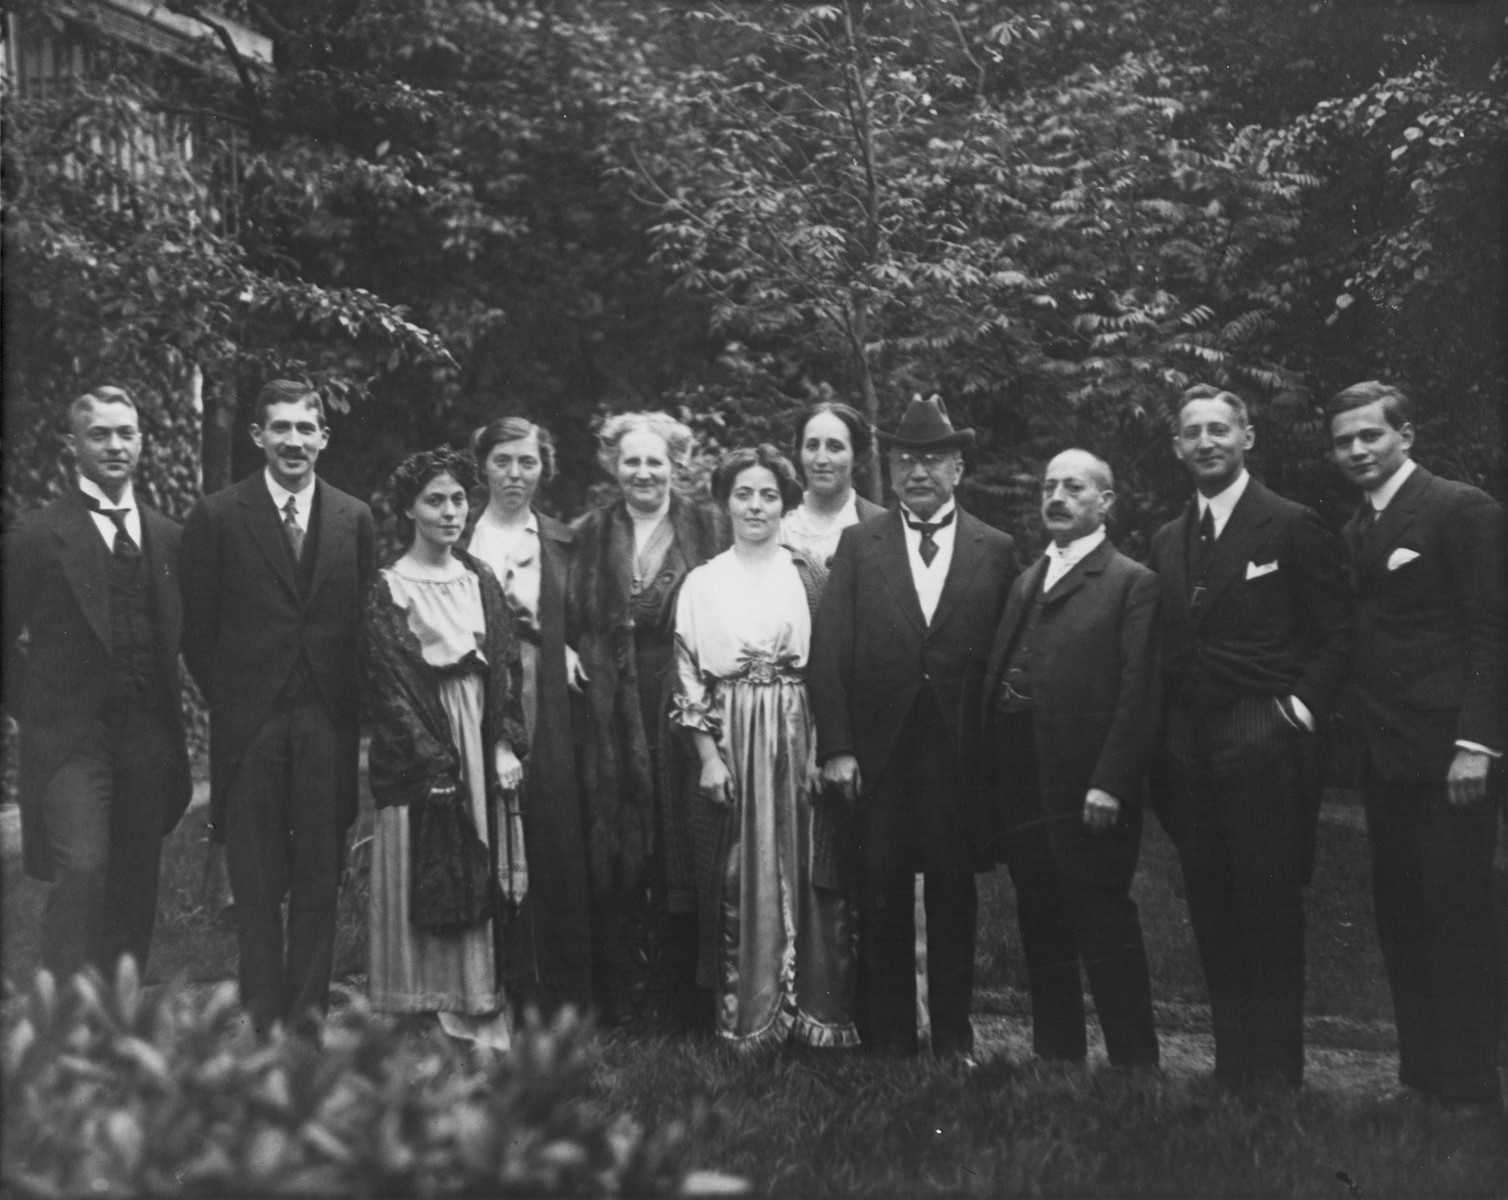 Group portrait of members of the Meyerhof and Schallenberg families in Germany.  Pictured from left to right are: Karl Schallenberg (Hedwig's sister), Otto Meyerhof, Hedwig Schallenberg, Else Schallenberg (Hedwig's sister), Bettina May Meyerhof (Otto's mother), Susanna Schallenberg (Hedwig's sister), Therese Meyerhof (Otto's sister), Felix Meyerhof (Otto's father), David Schallenberg (Hedwig's father), Walter Meyerhof (Otto's brother) and Paul Meyerhof (Otto's brother).